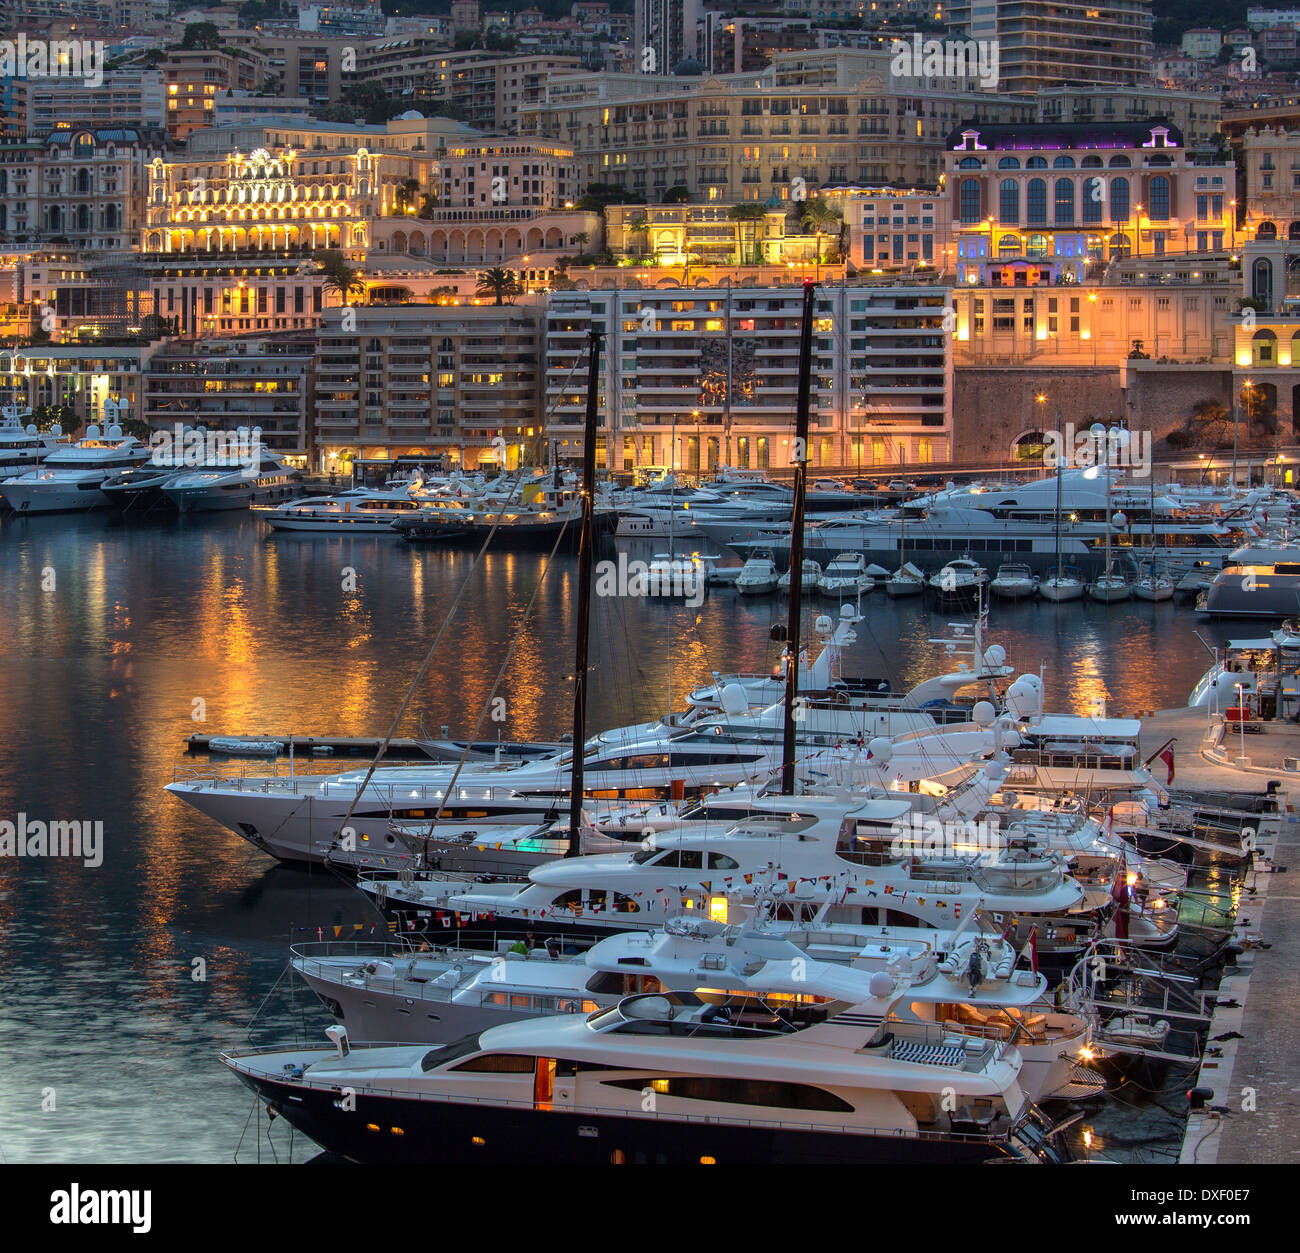 The Principality of Monaco, a sovereign city state, located on the French Riviera - Stock Image